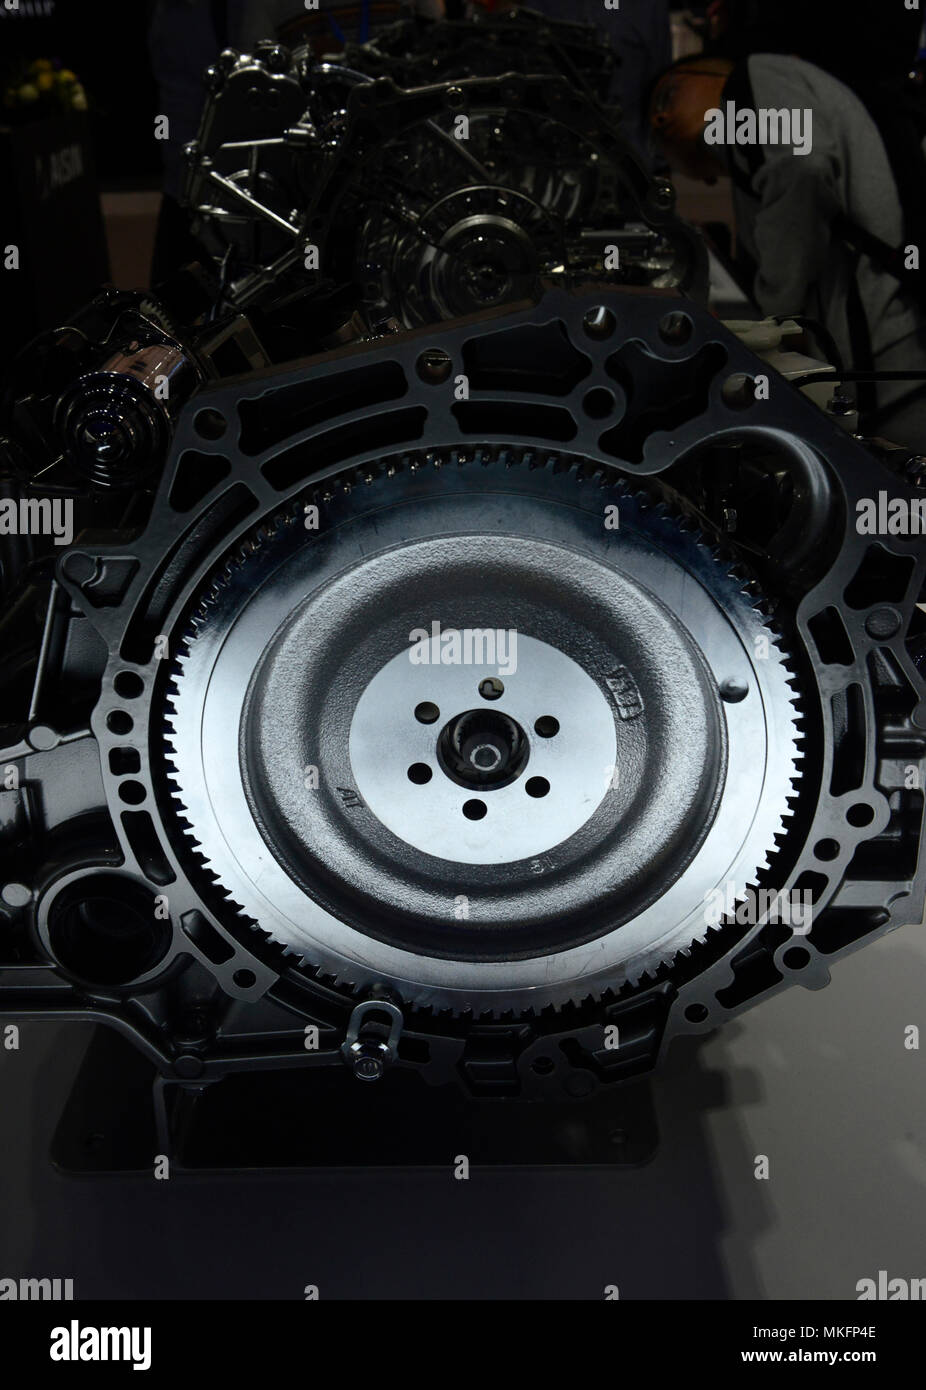 An Automatic Transmission On The Aisin Stand At The Auto China 2018 Show In Beijing China Stock Photo Alamy